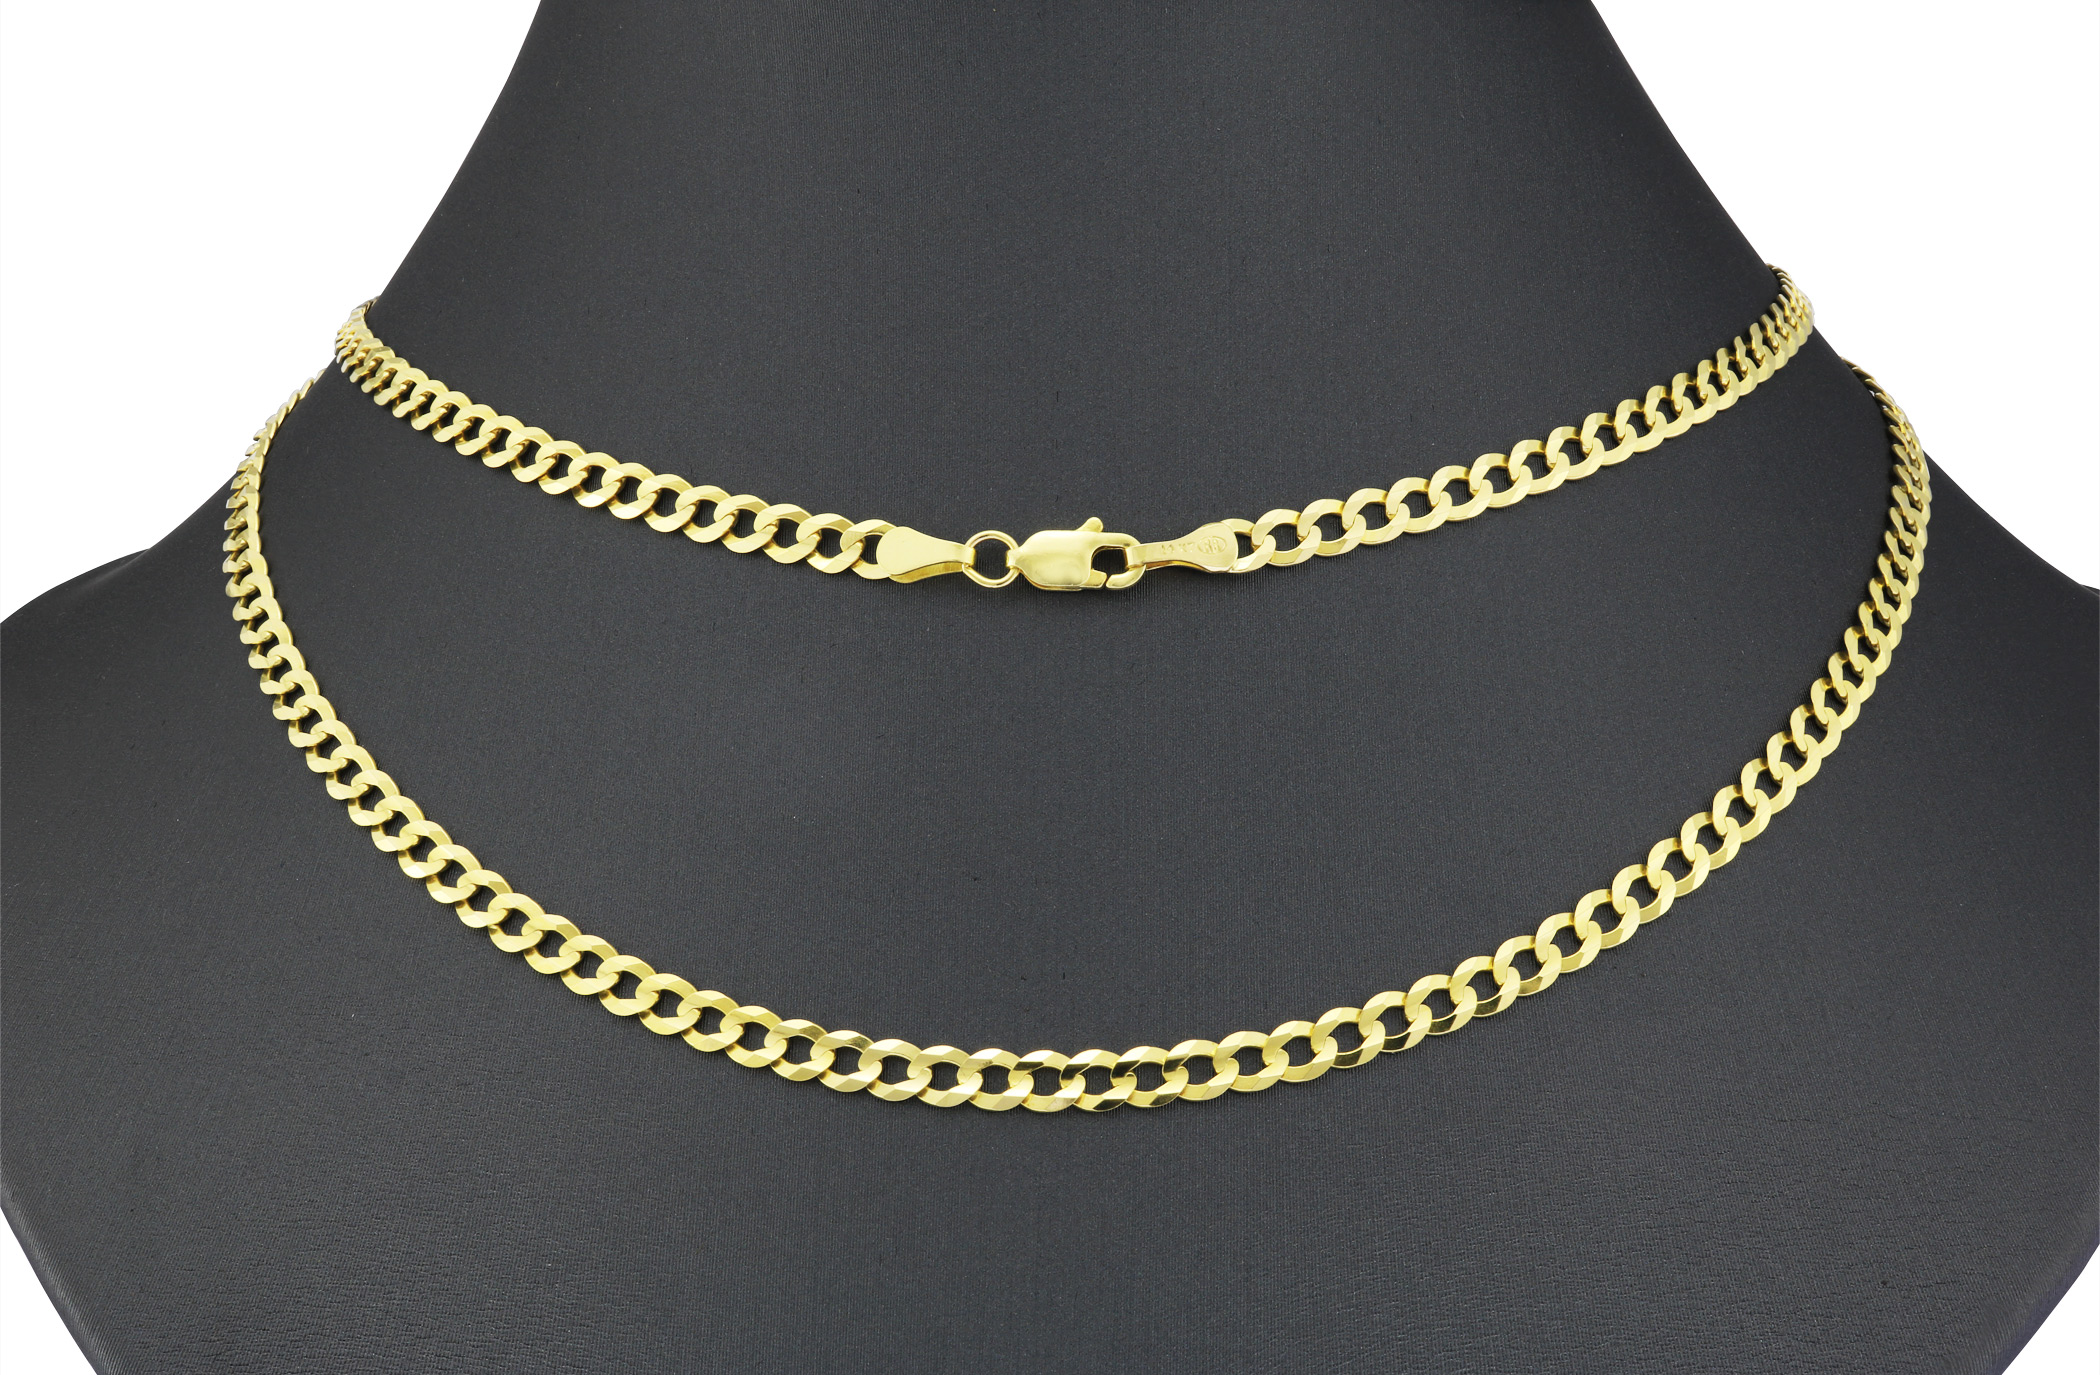 14K-Solid-Yellow-Gold-4mm-Cuban-Curb-Chain-Link-Bracelet-Lobster-Clasp-7-034-8-034-9-034 thumbnail 21